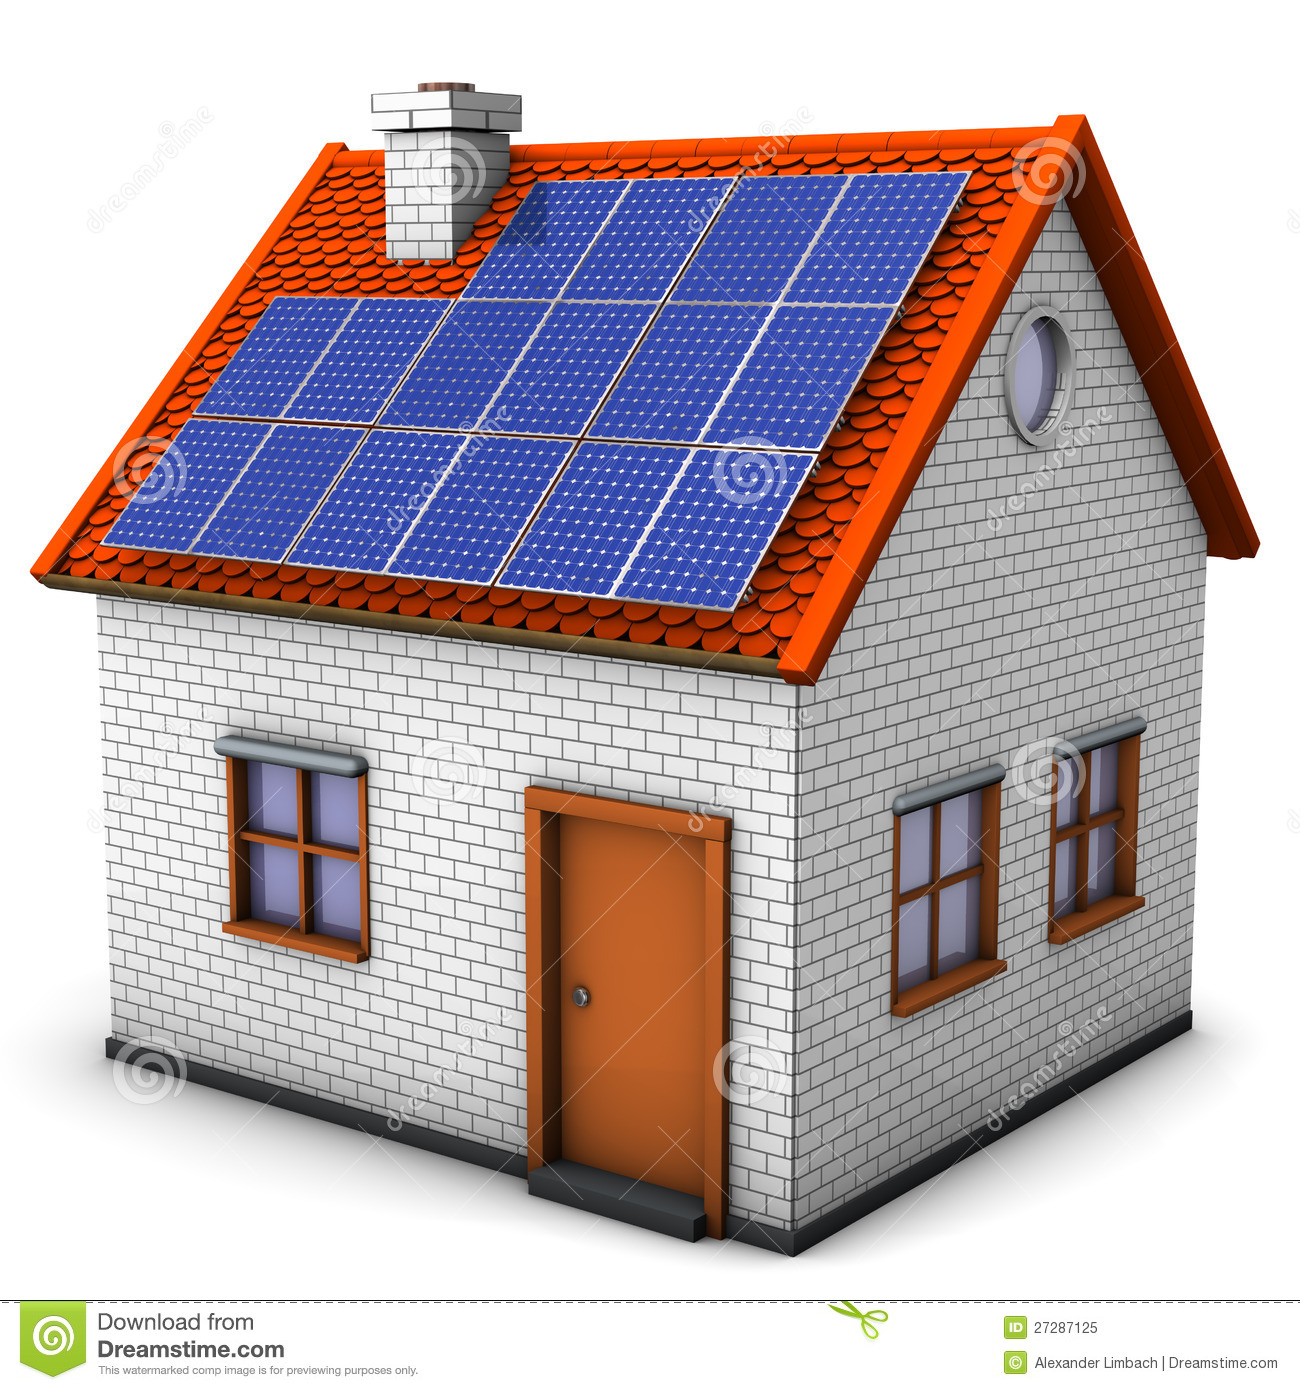 House Solar Panels Royalty Free Stock Photo - Image: 27287125